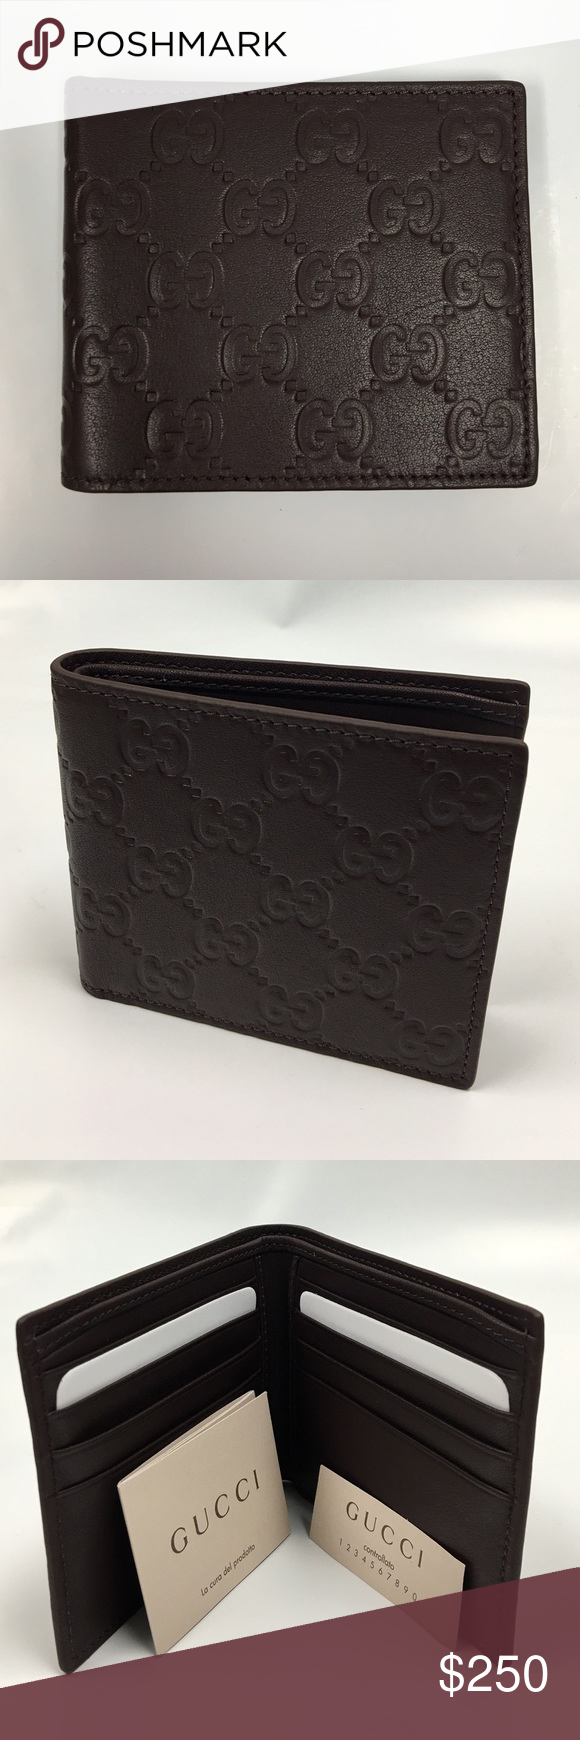 Gucci Wallet Chocolate Brown GUCCI Guccisima Wallet   Eight card slots and two bill compartments Open: W21cm x H9cm Closed: W11cm x H9cm Made in Italy  %100 authentic. Comes with original box and paper cover. Gucci Bags Wallets